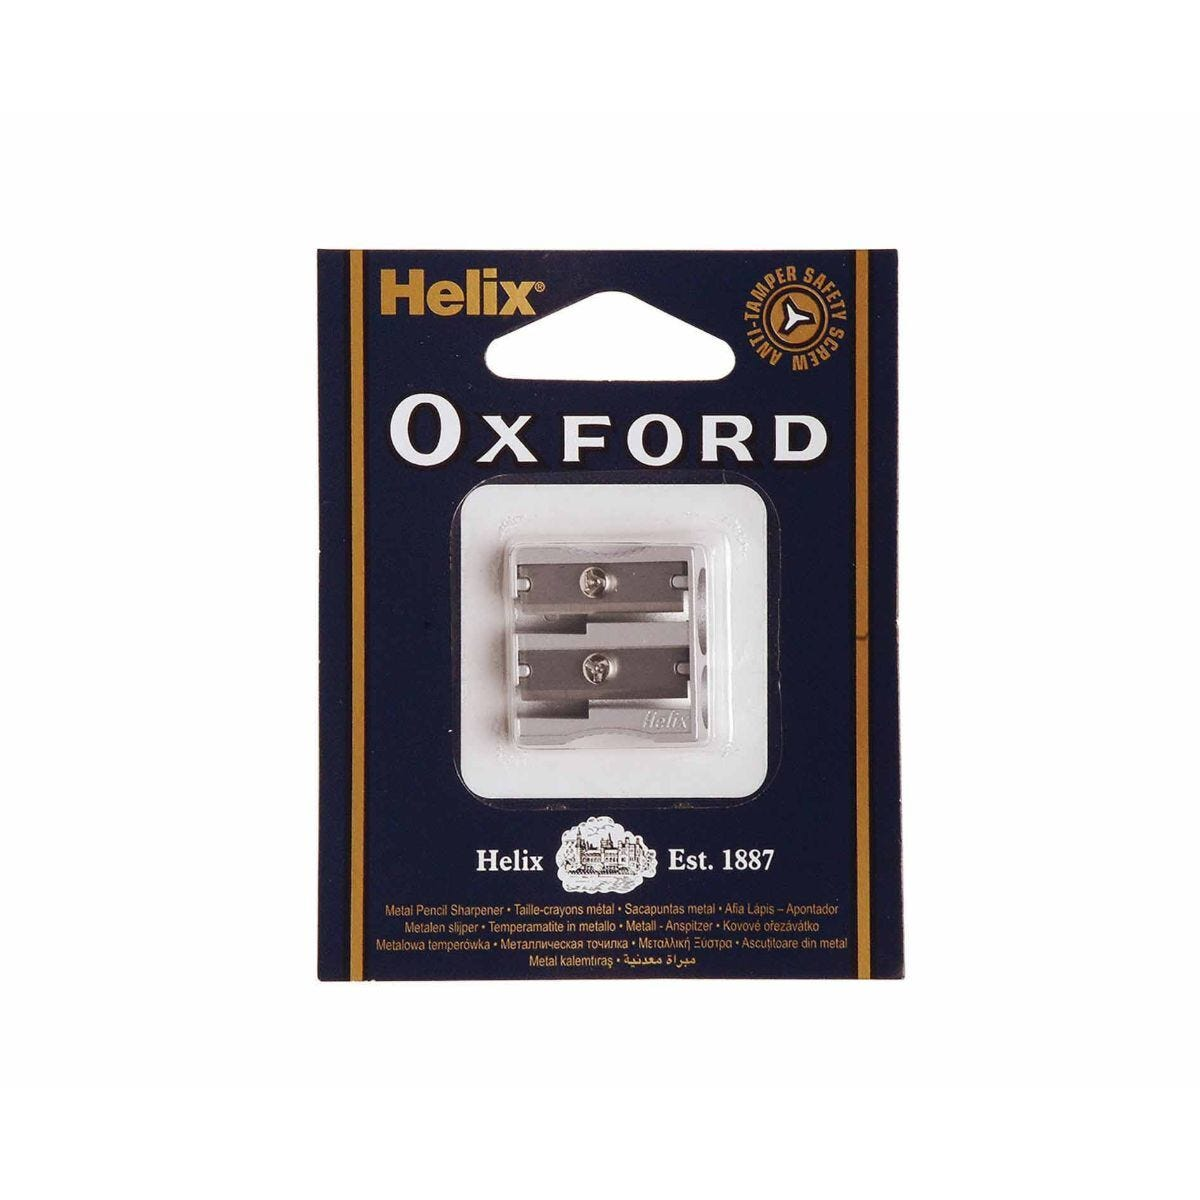 Helix Oxford Metal Pencil Sharpener Double Hole